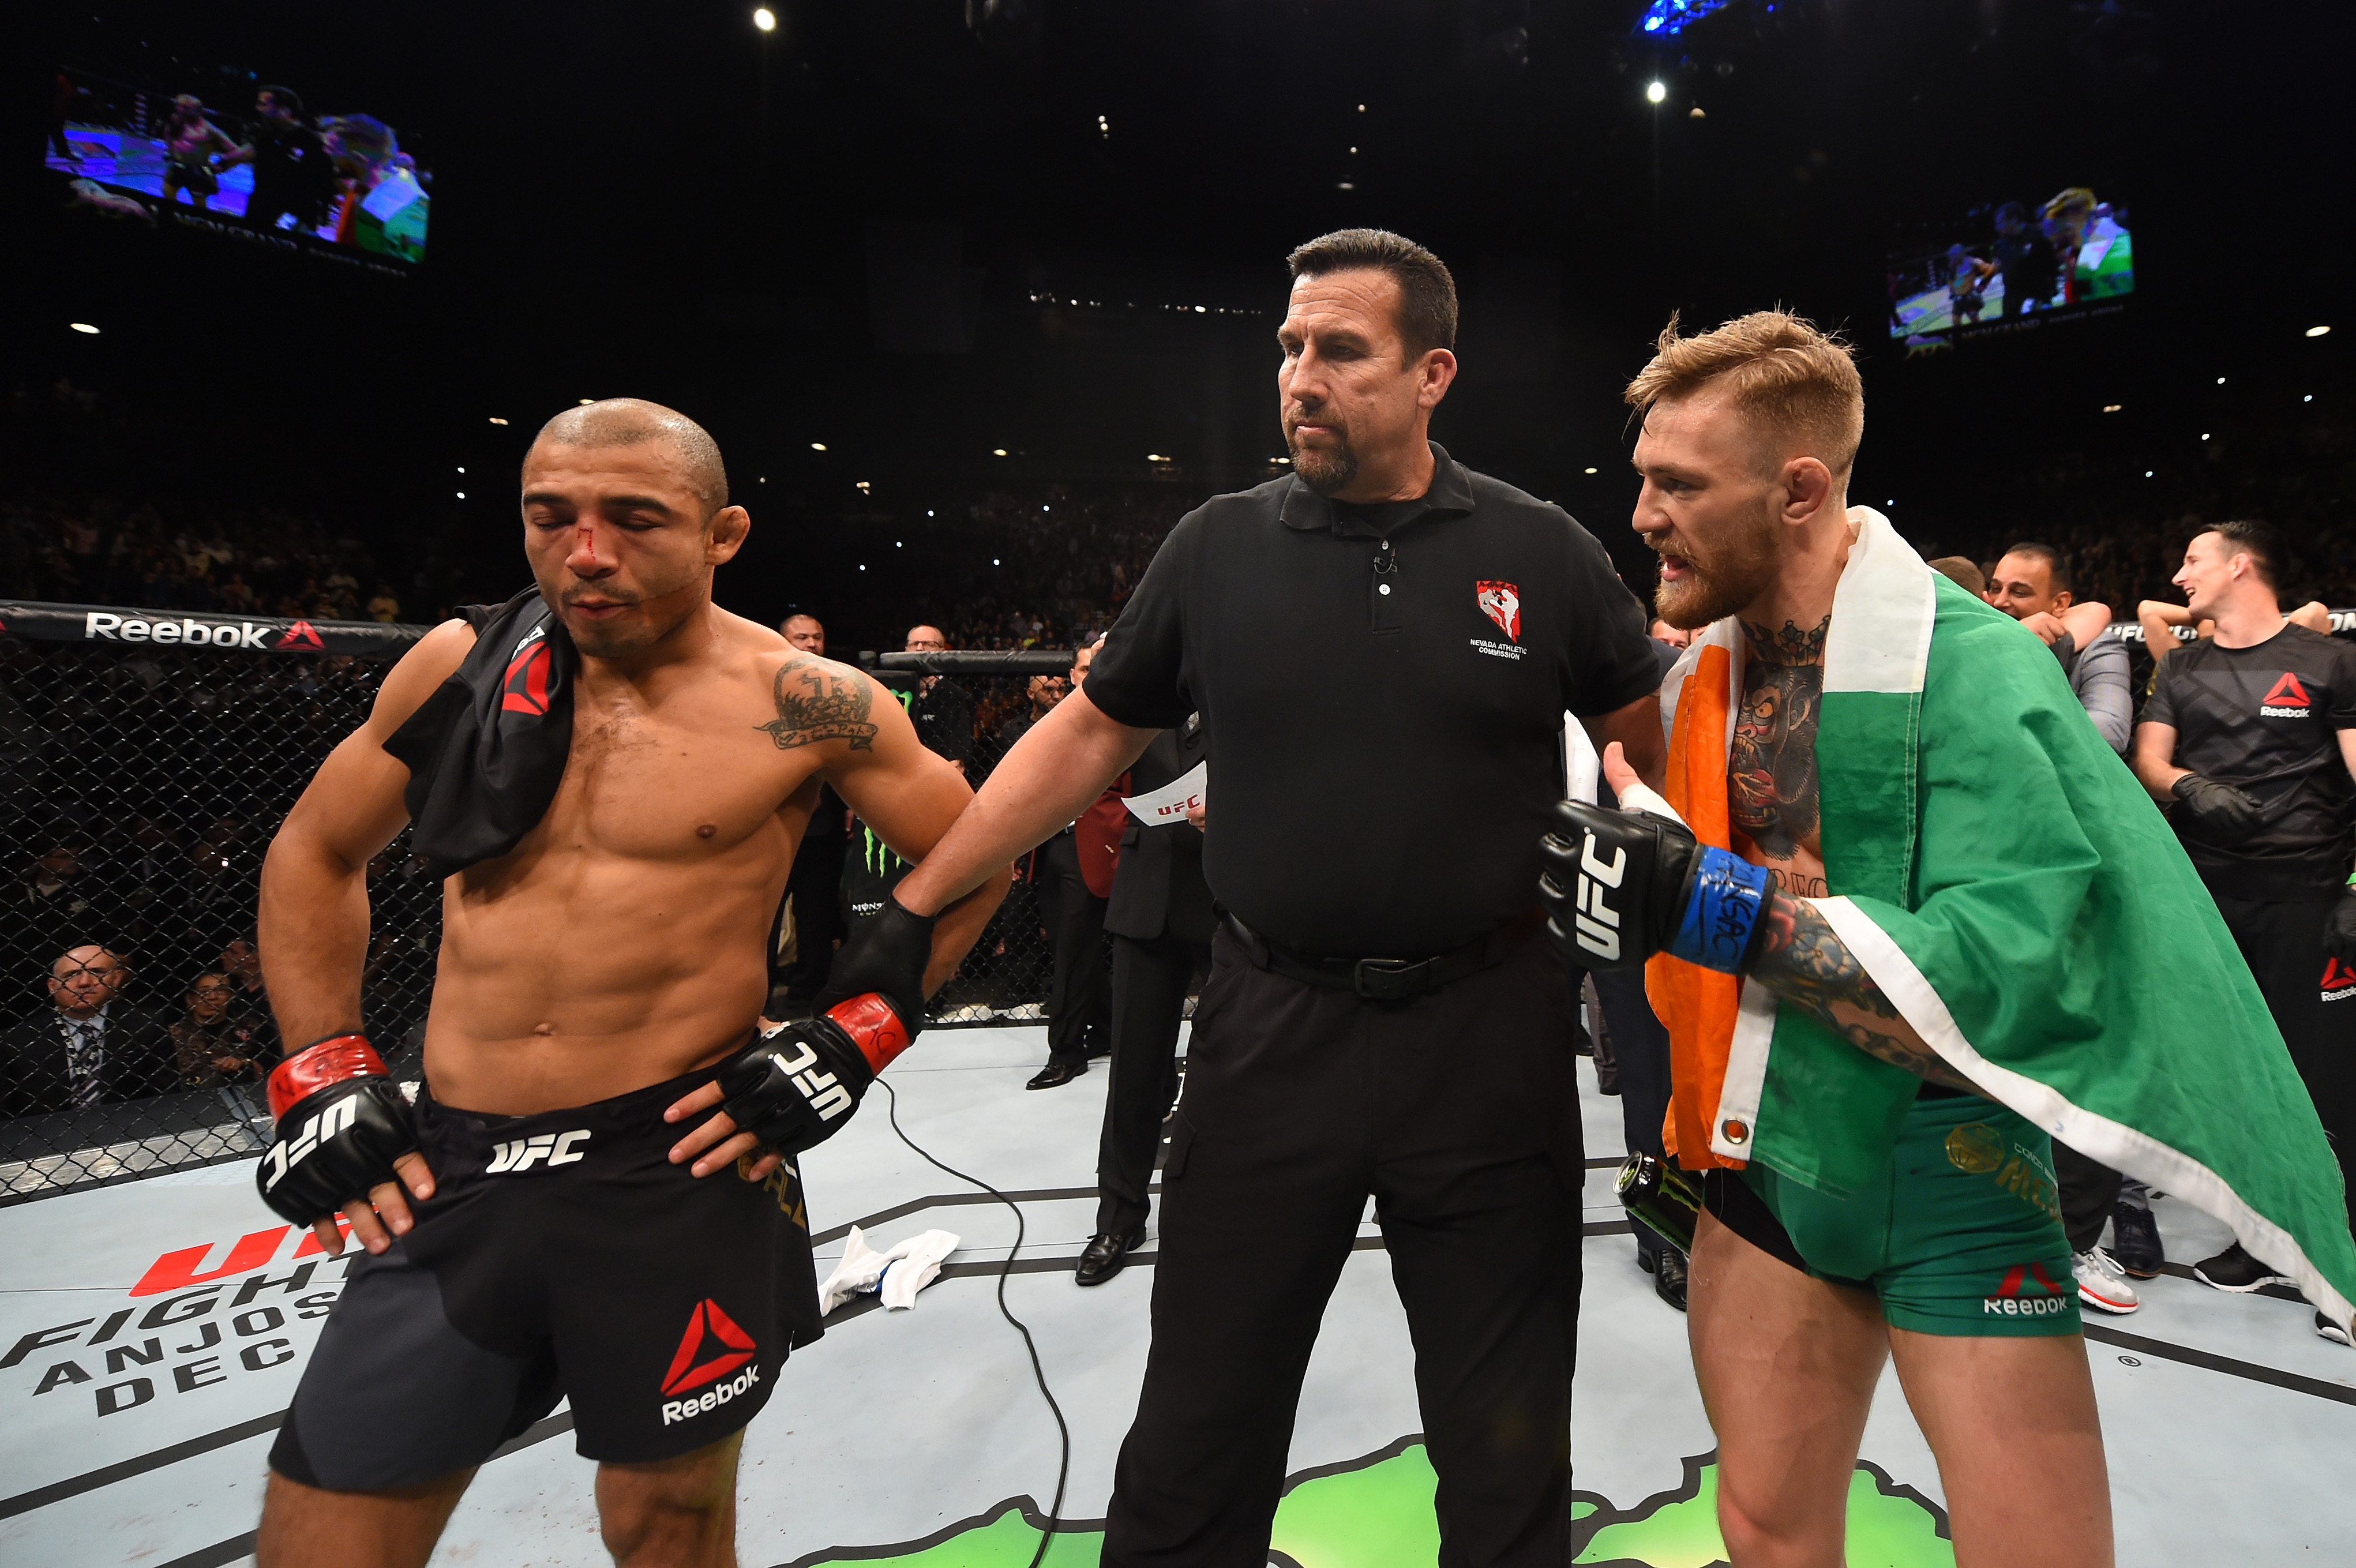 Jose Aldo wants to fight Conor McGregor at UFC 205 in featherweight title unification